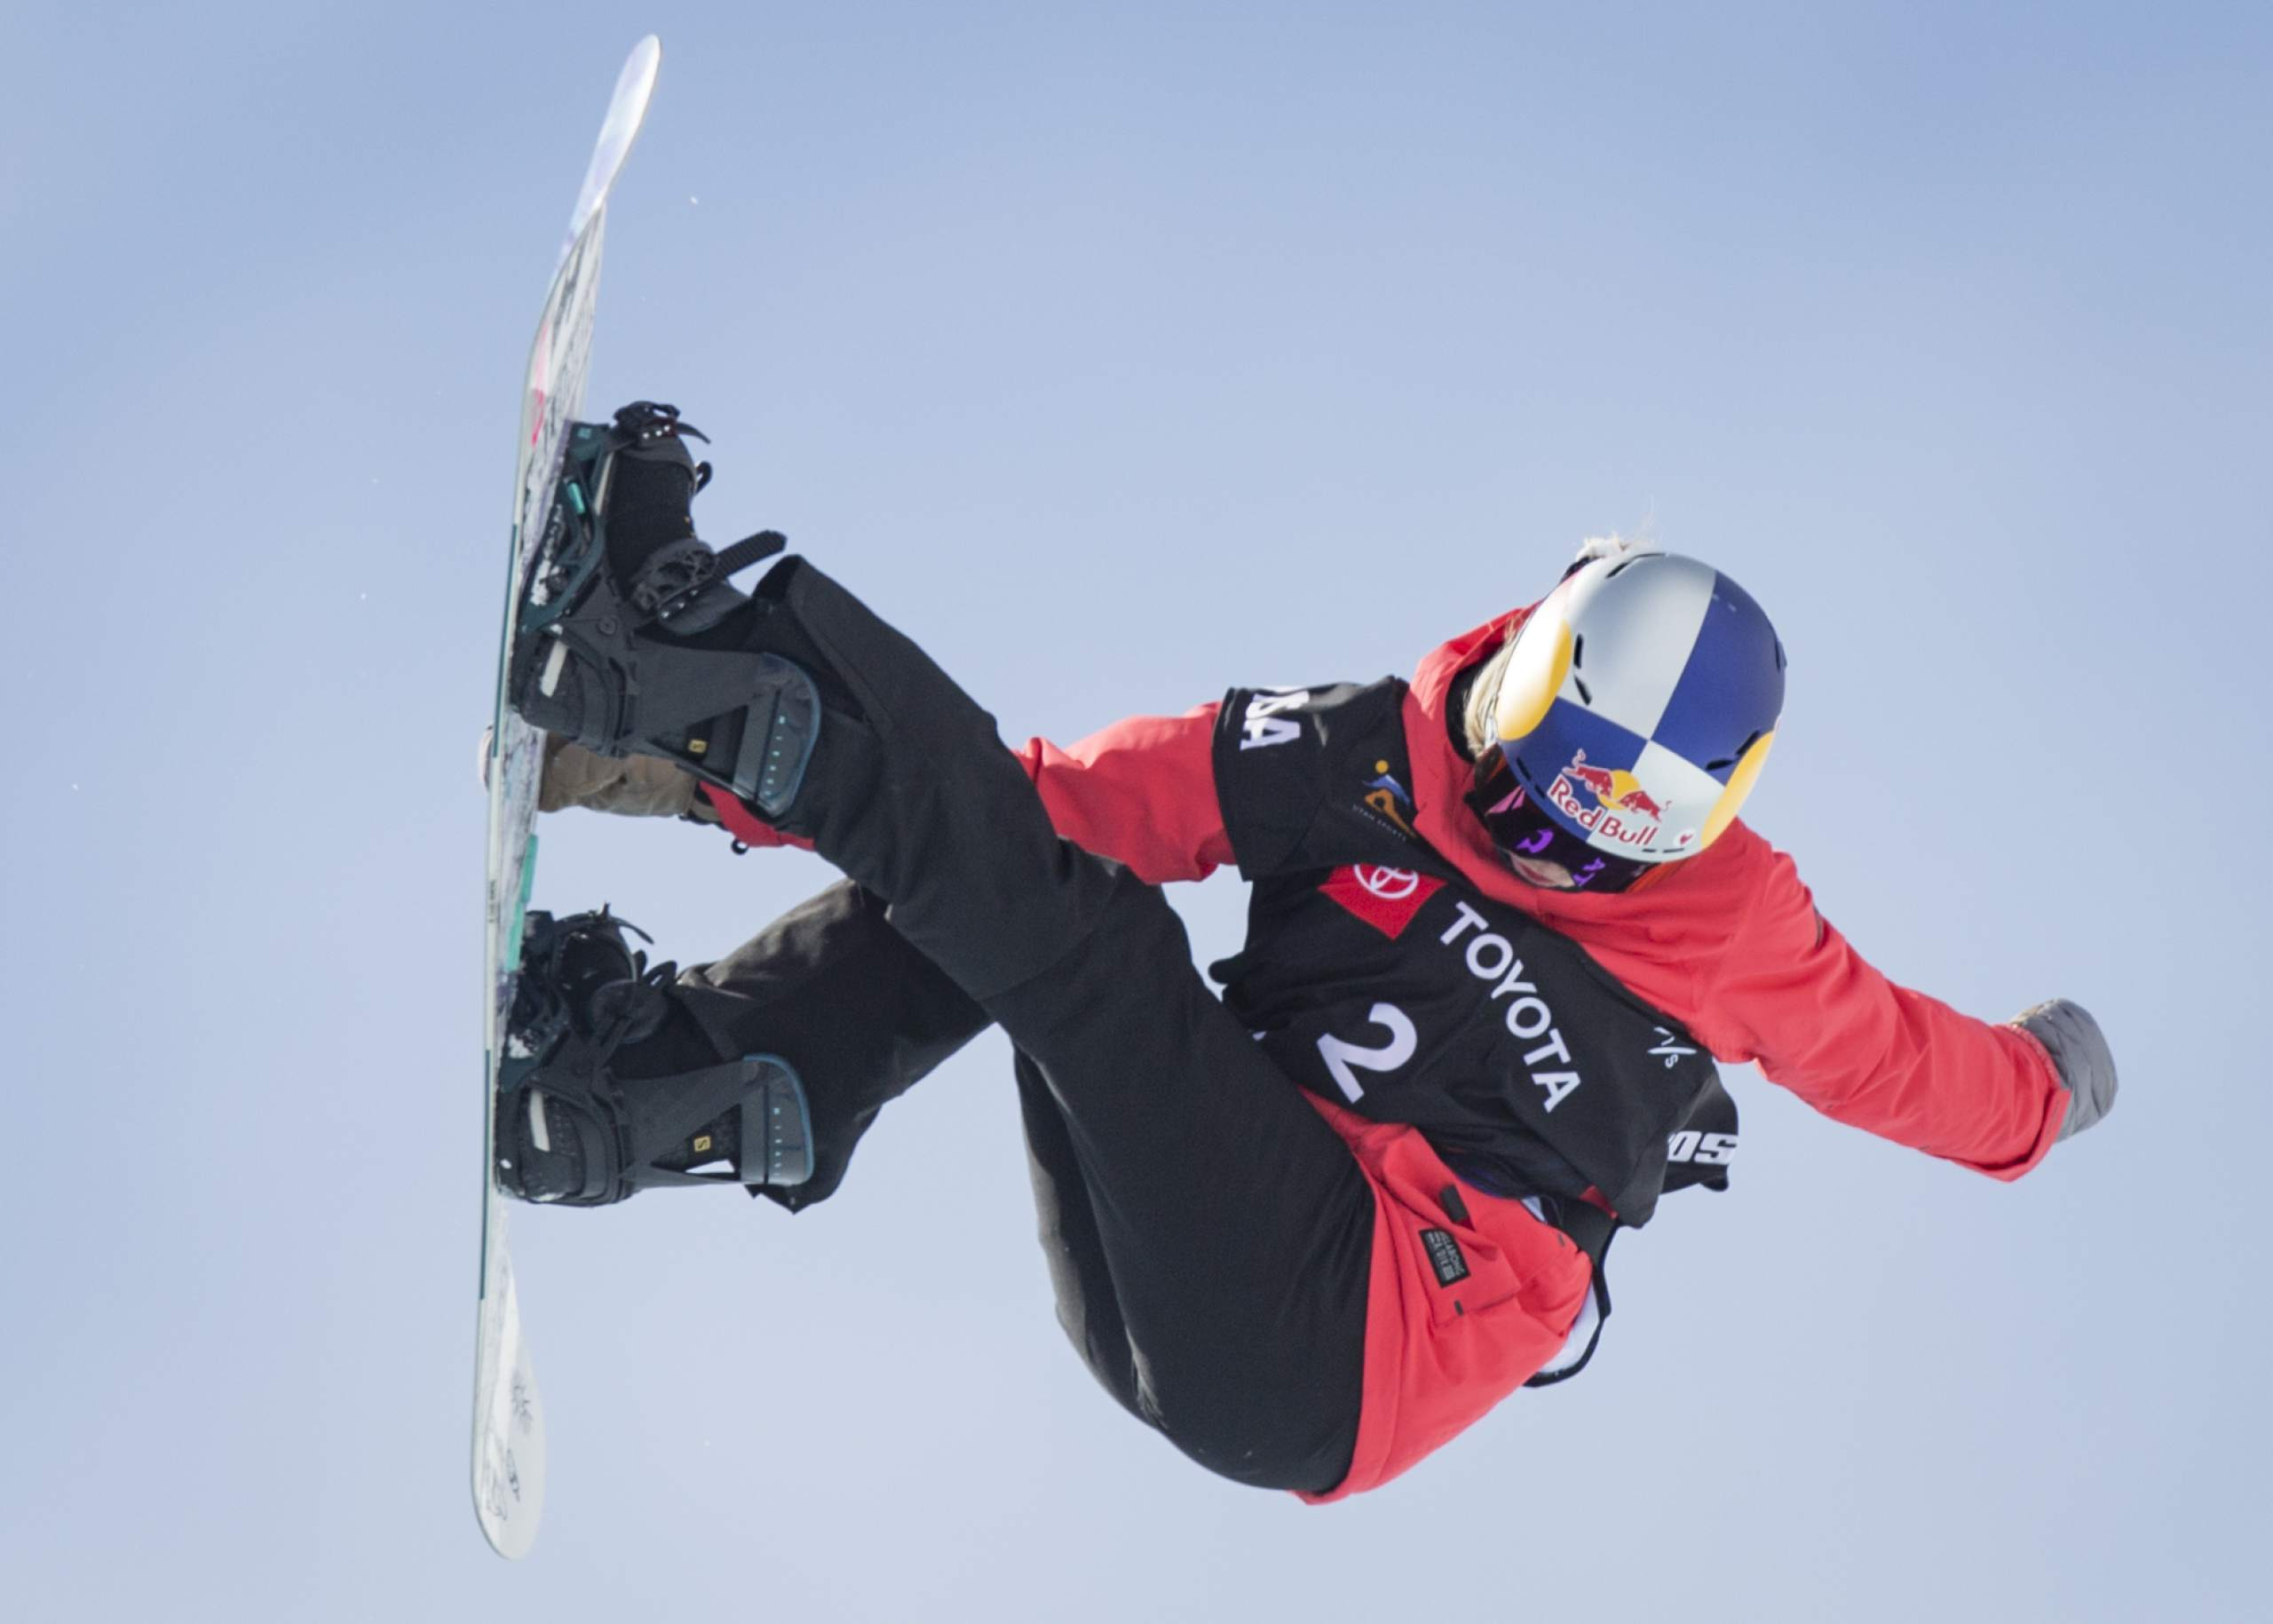 Two new domestic events highlight US Ski and Snowboard's upcoming season